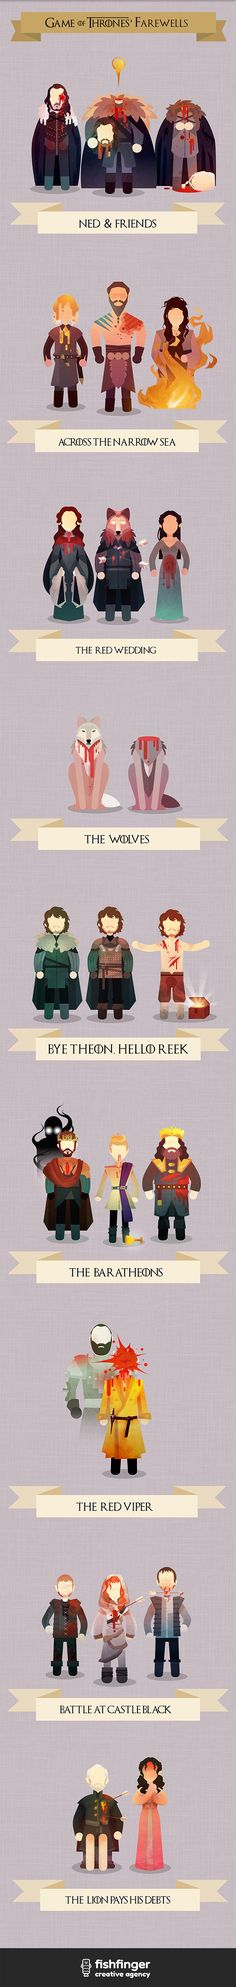 Game of Thrones Deaths Illustrated | Pic | Gear - These are the deaths as of the end of Season 4